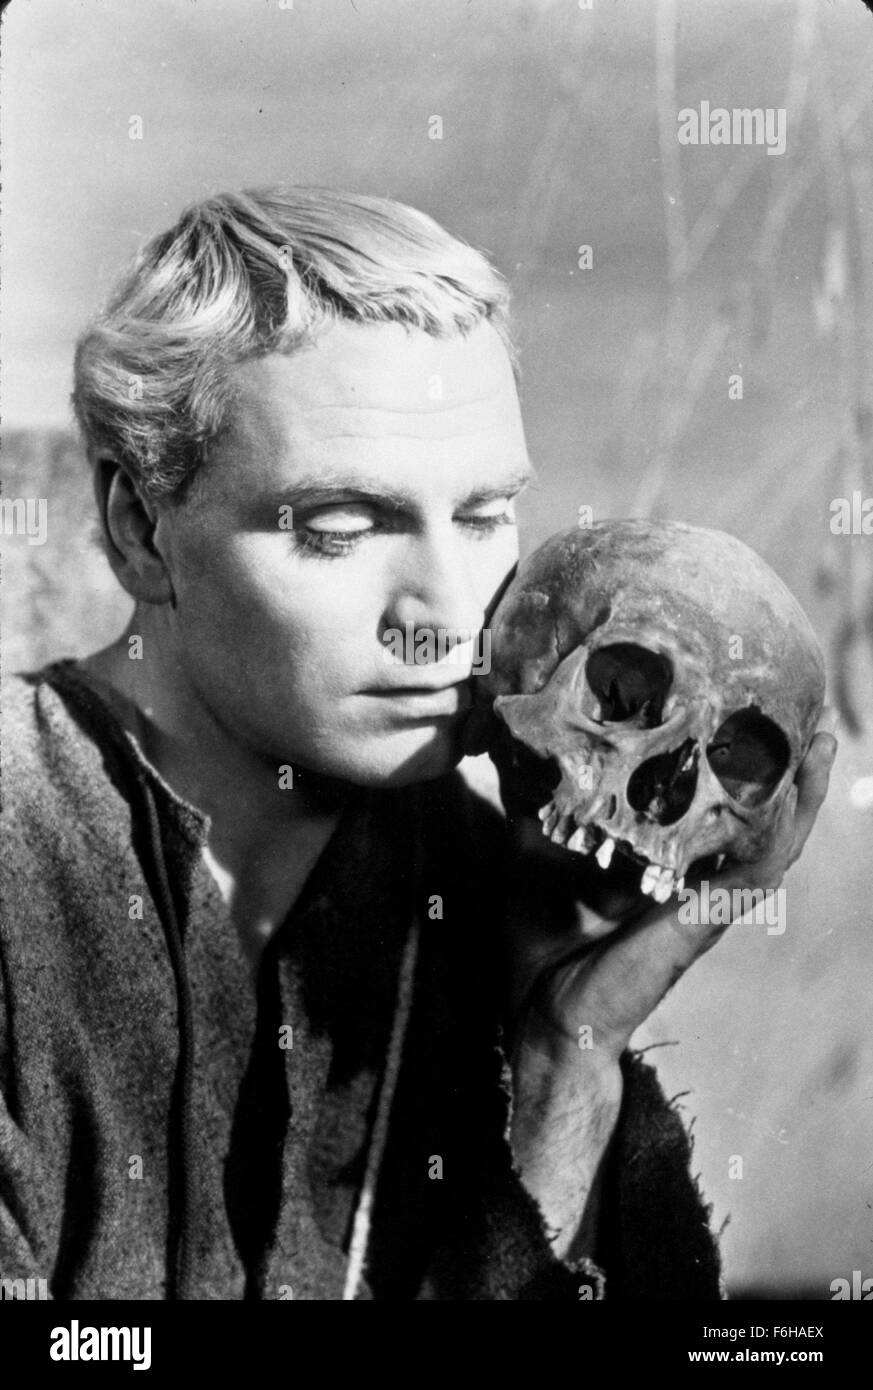 1948, Film Title: HAMLET, Director: LAURENCE OLIVIER, Pictured: 1948, AWARDS - ACADEMY, BEST ACTOR, LAURENCE OLIVIER, - Stock Image